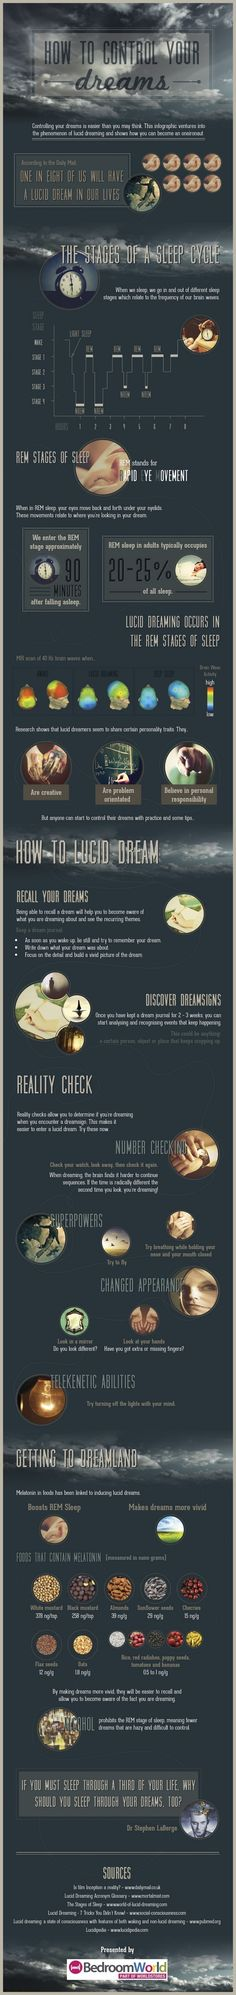 how-to-control-your-dreams-infographic